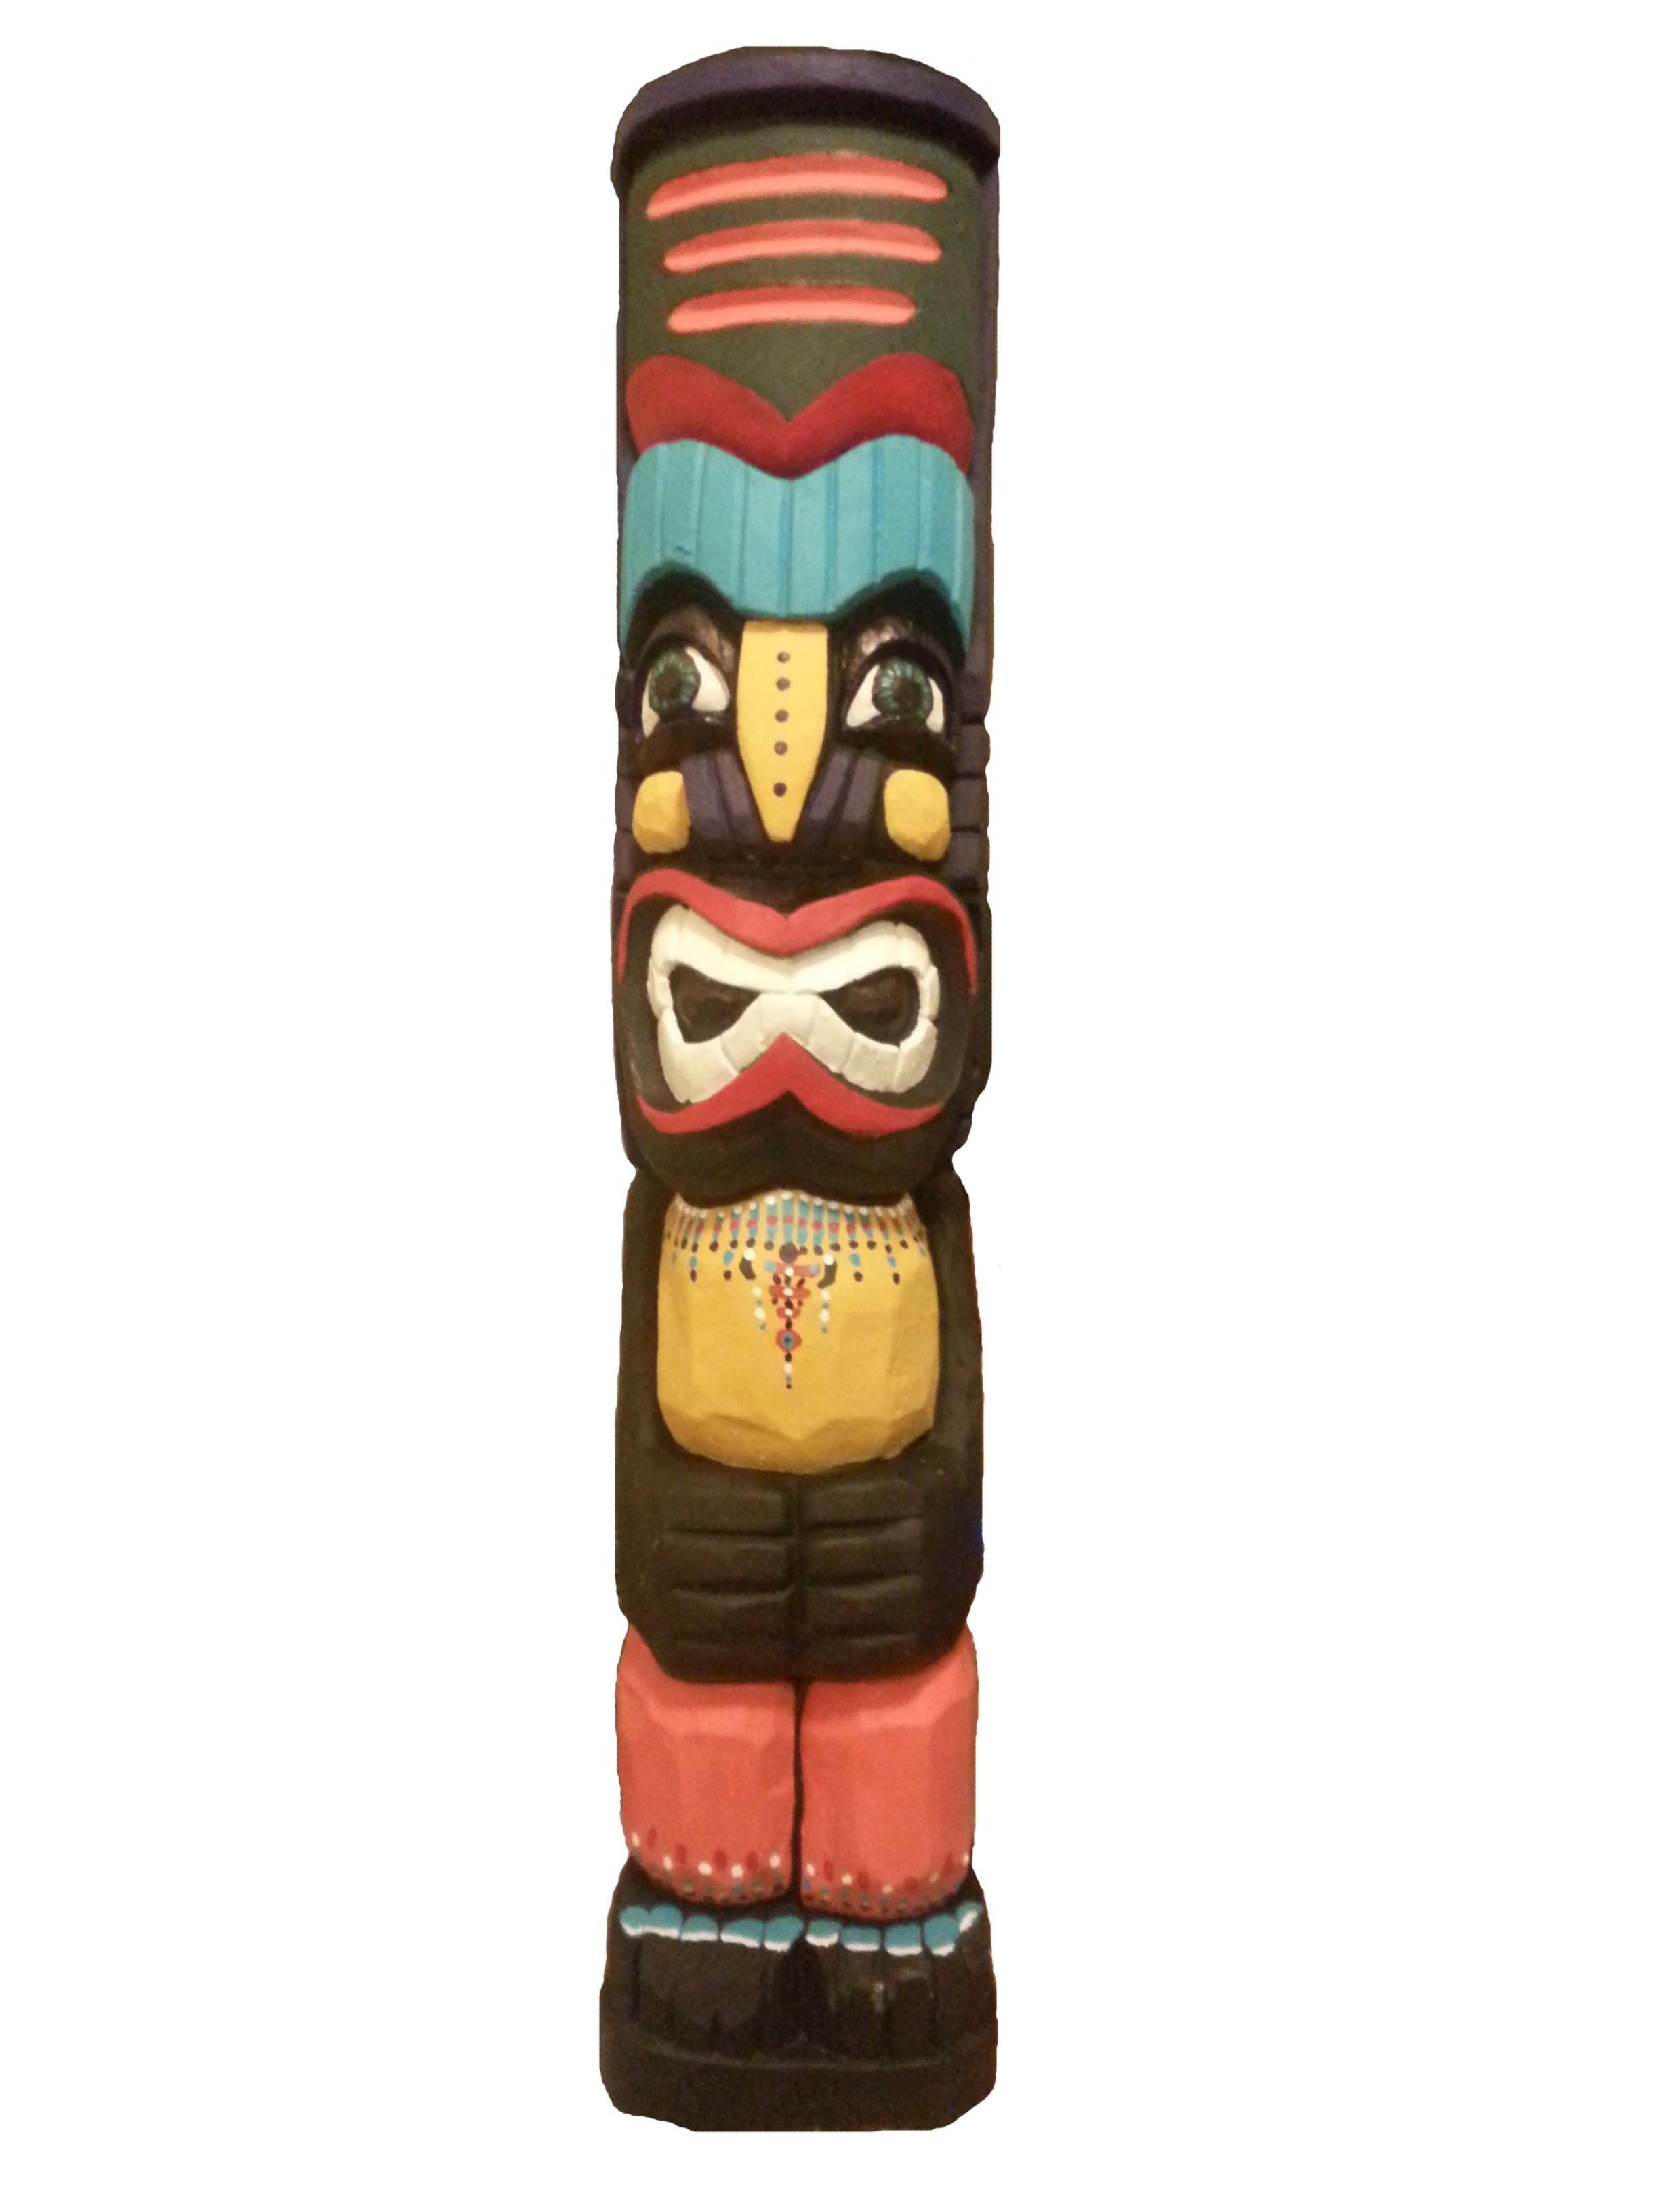 Hand Crafted Hand Painted Totem Pole Lawn Art Statue By Mr